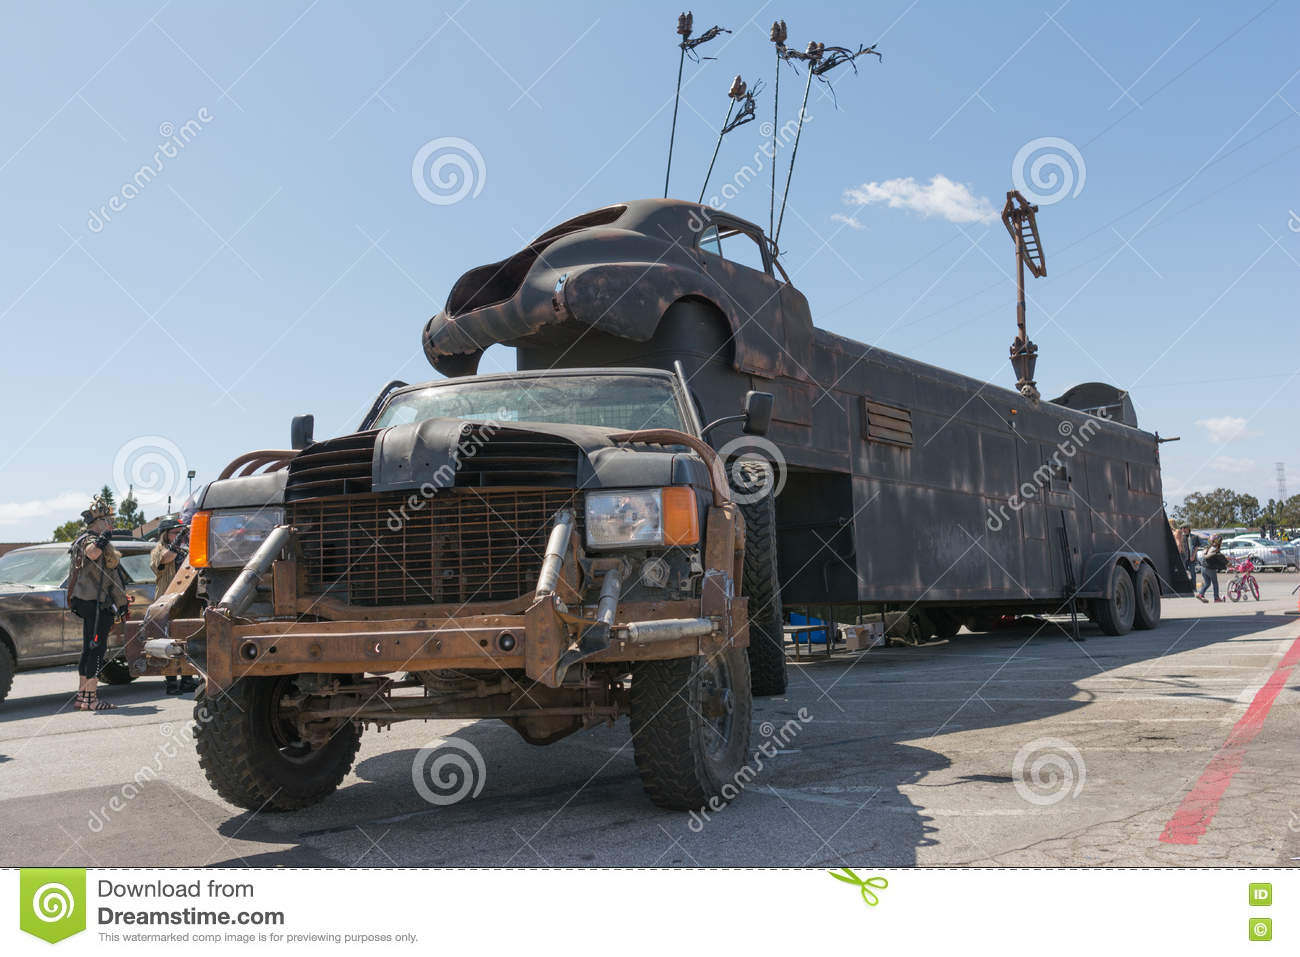 Editorial stock photo download post apocalyptic survival truck